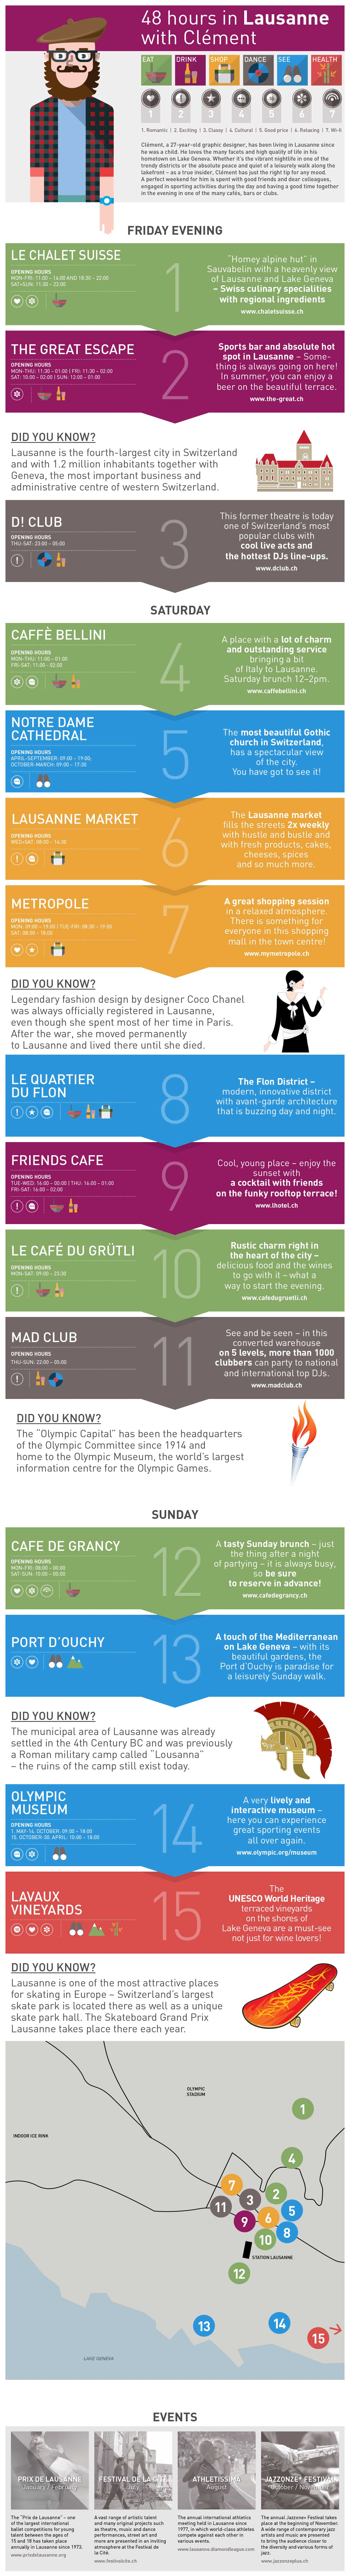 infographic Lausanne